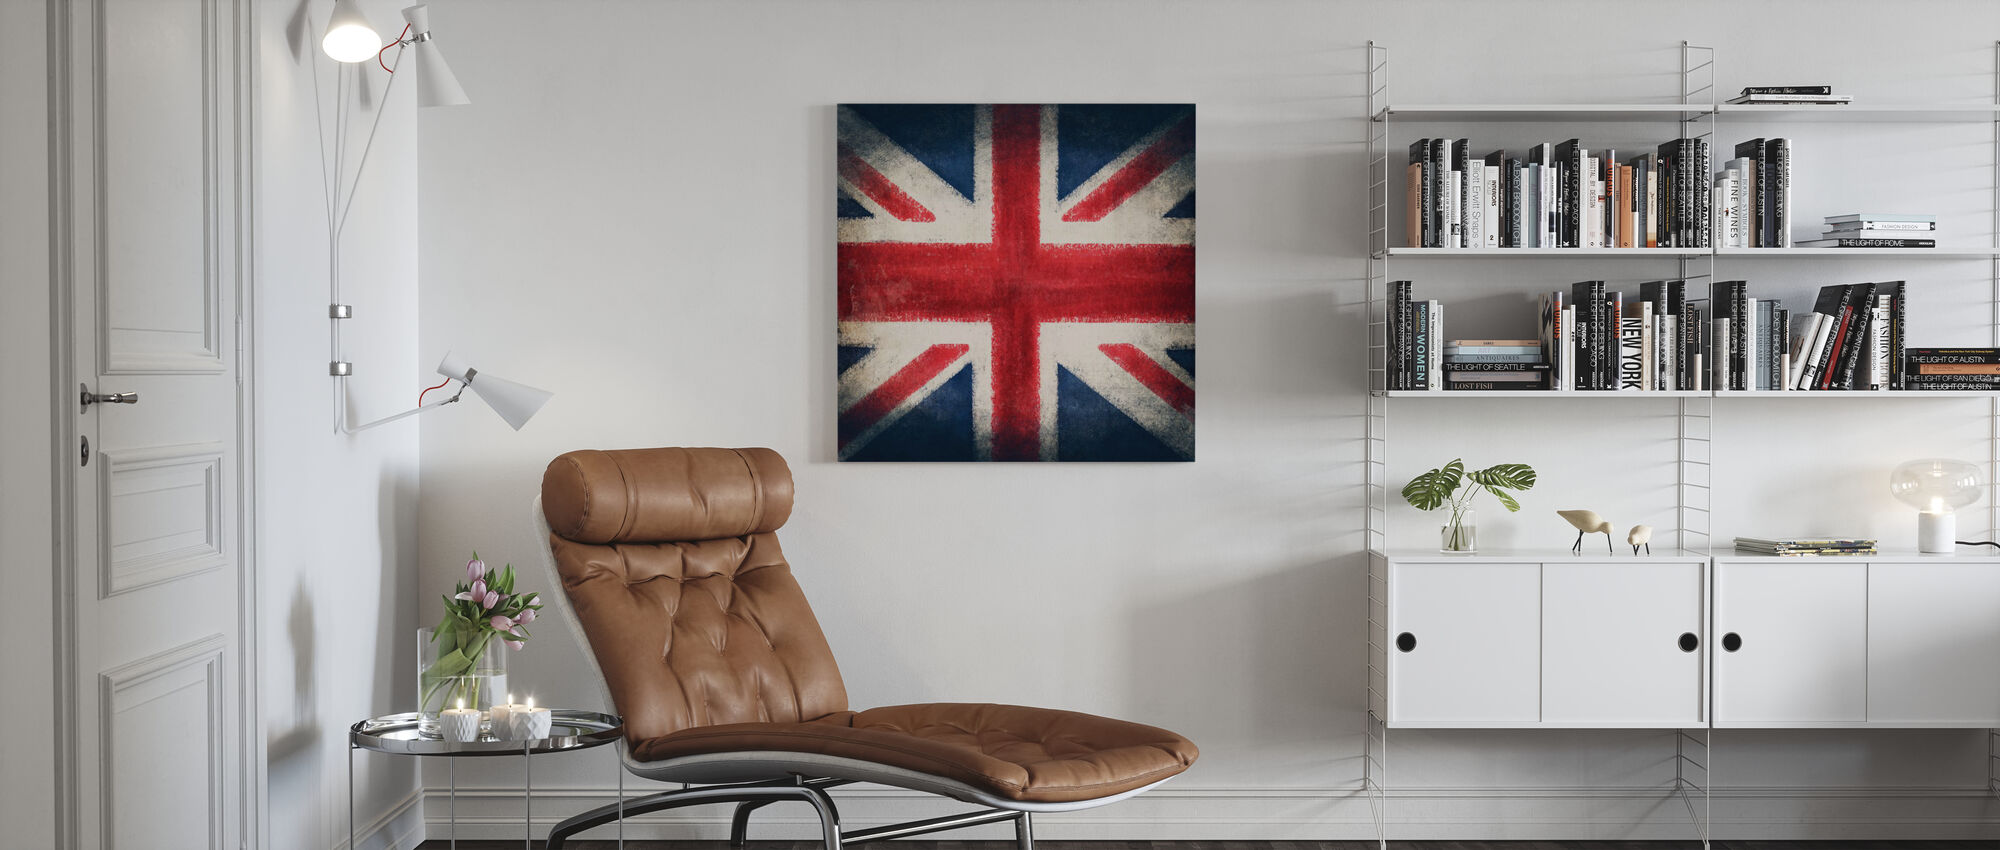 Retro Flag - Canvas print - Living Room